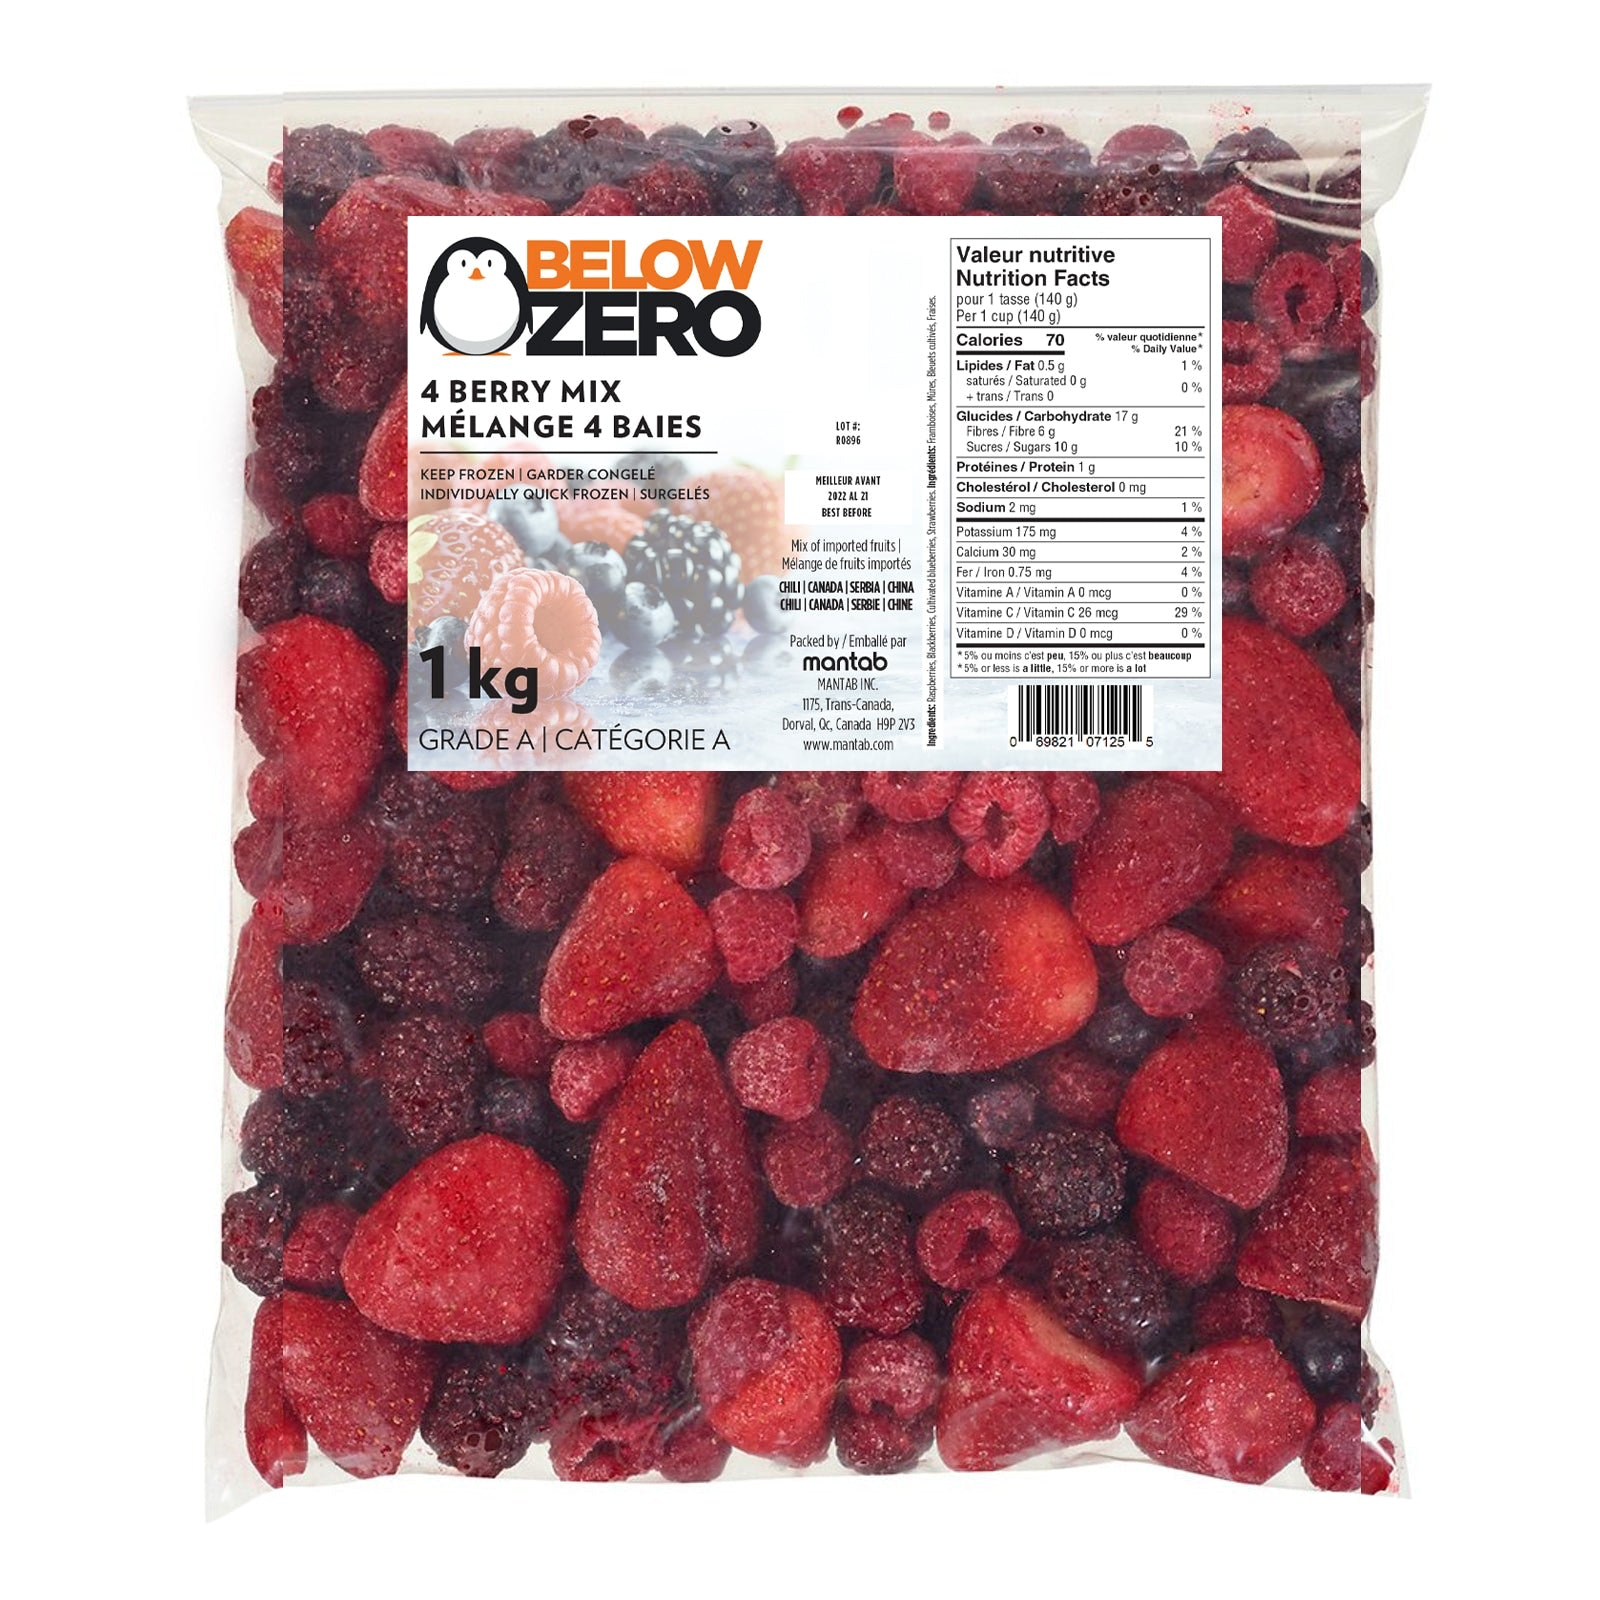 BELOW ZERO 4 berry mix